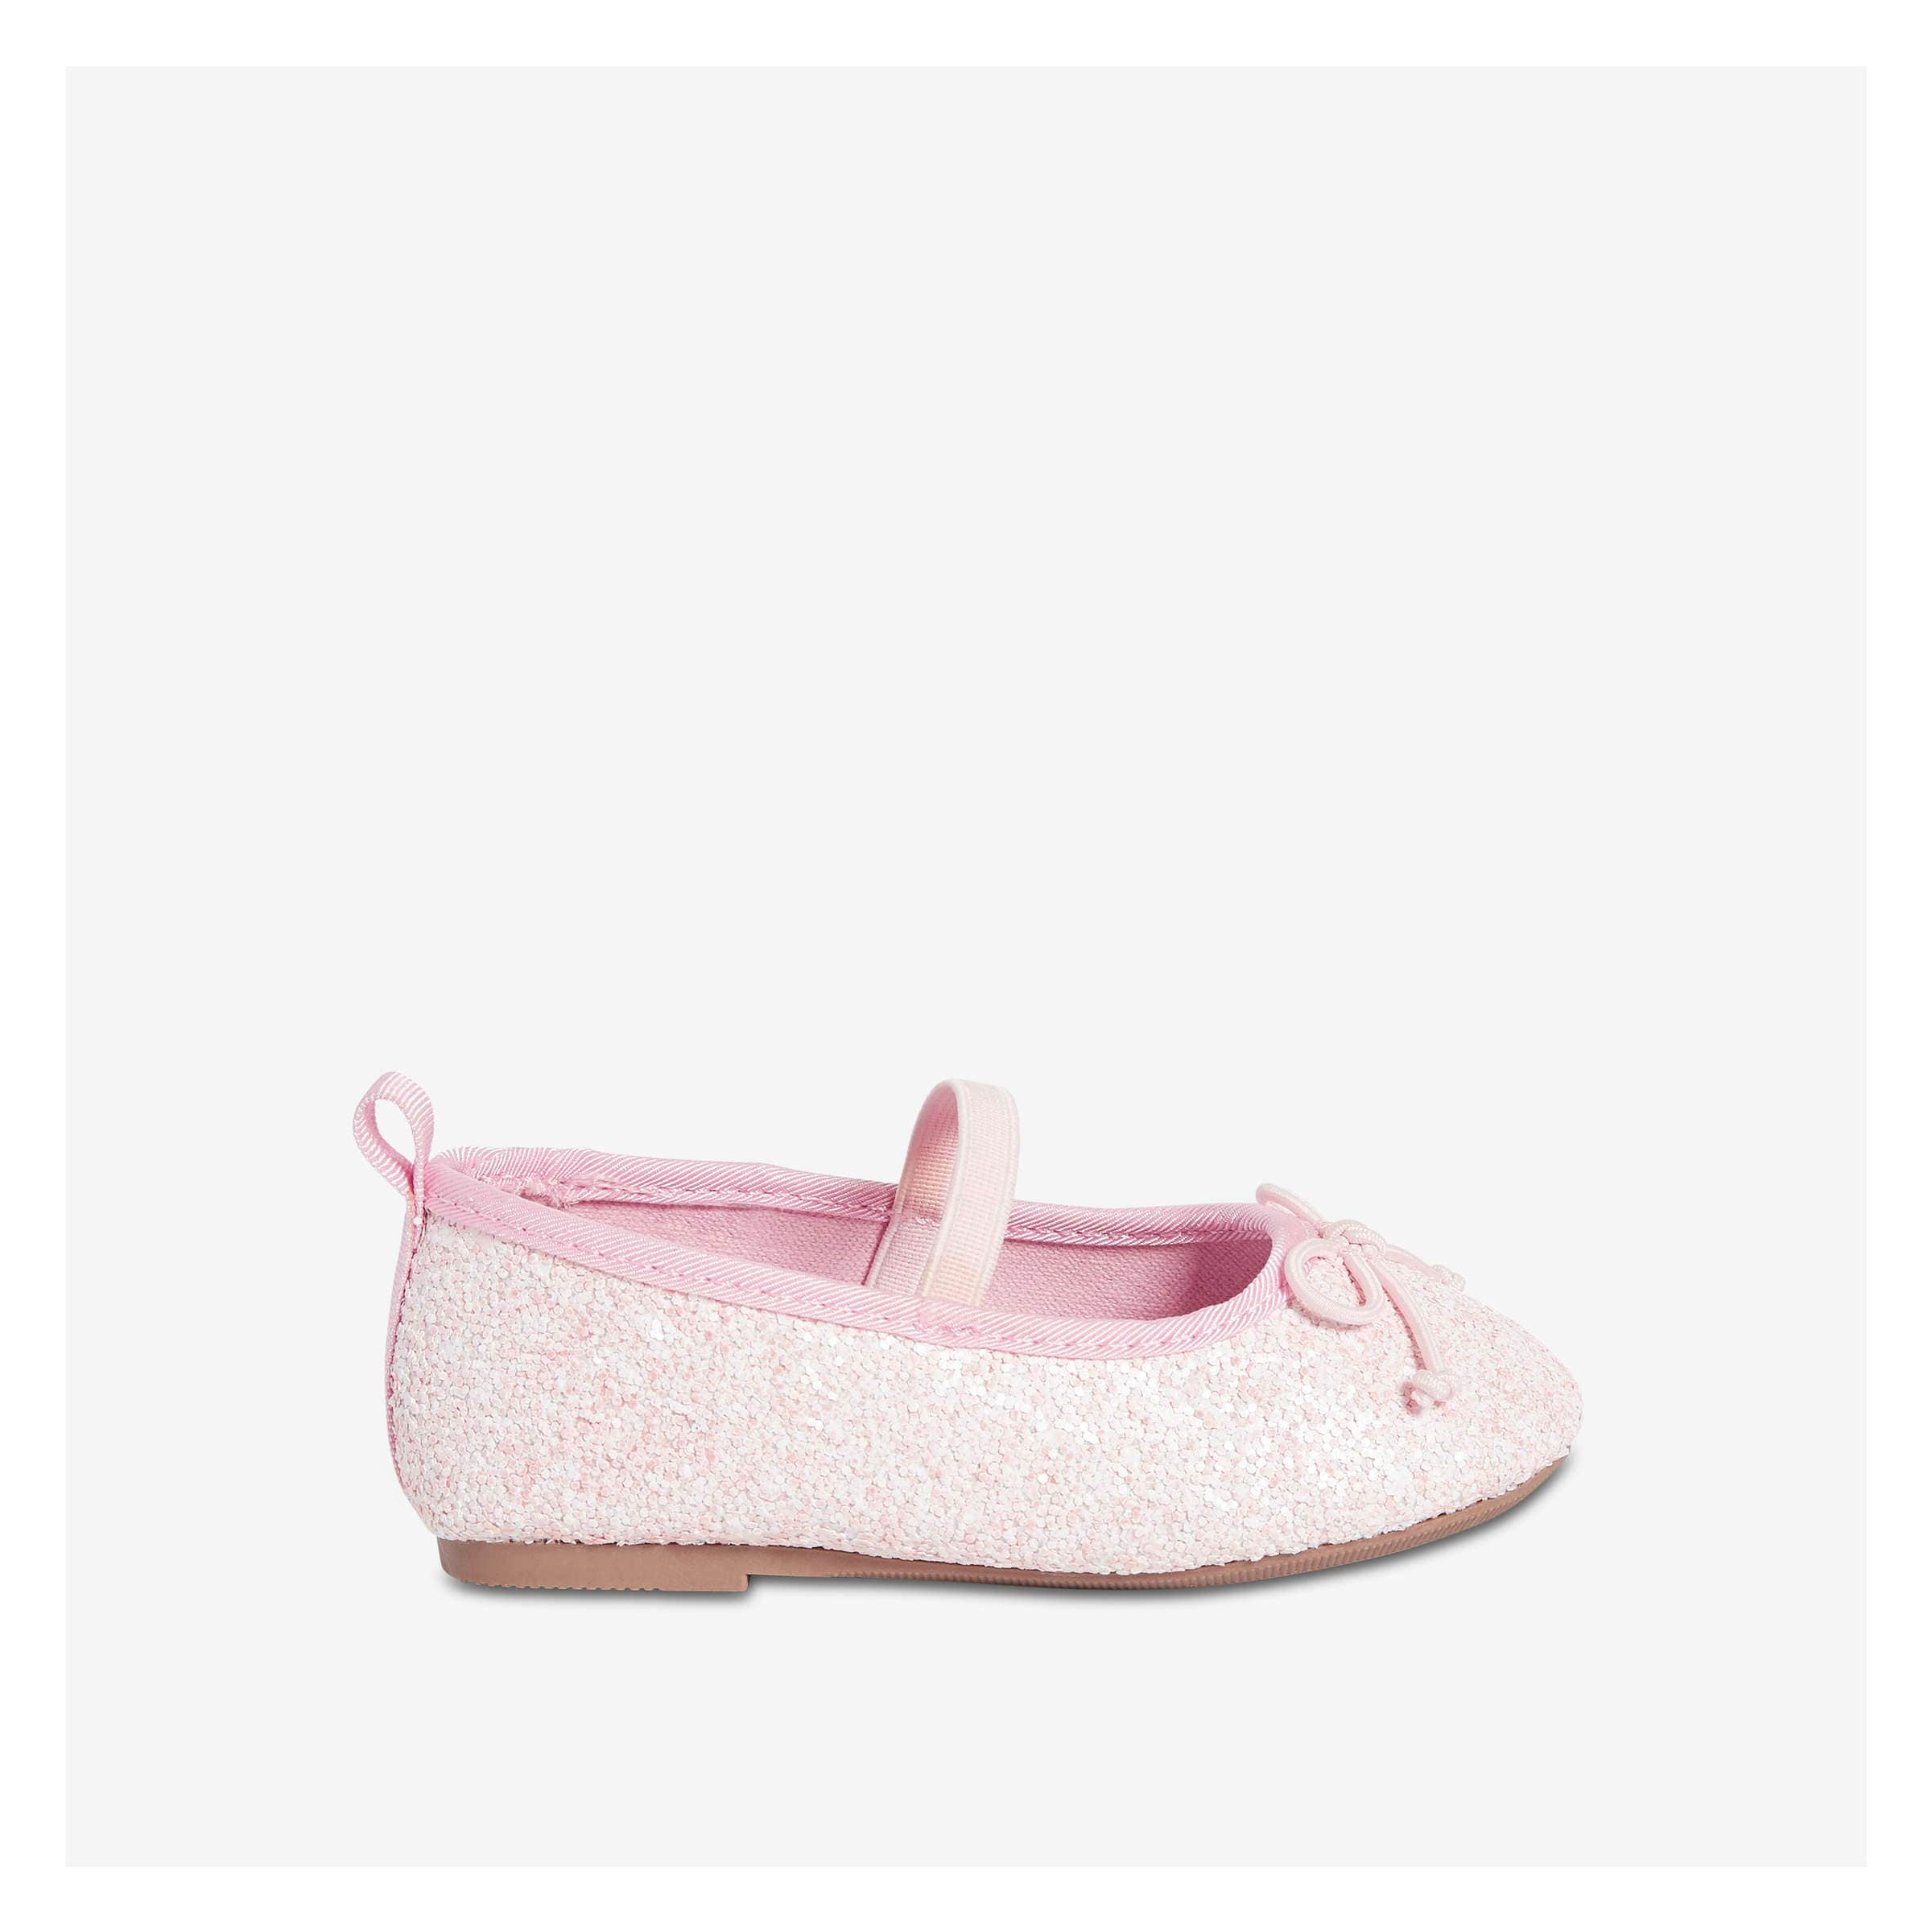 663896dae Baby Girls' Glitter Ballet Flats in Light Pink from Joe Fresh